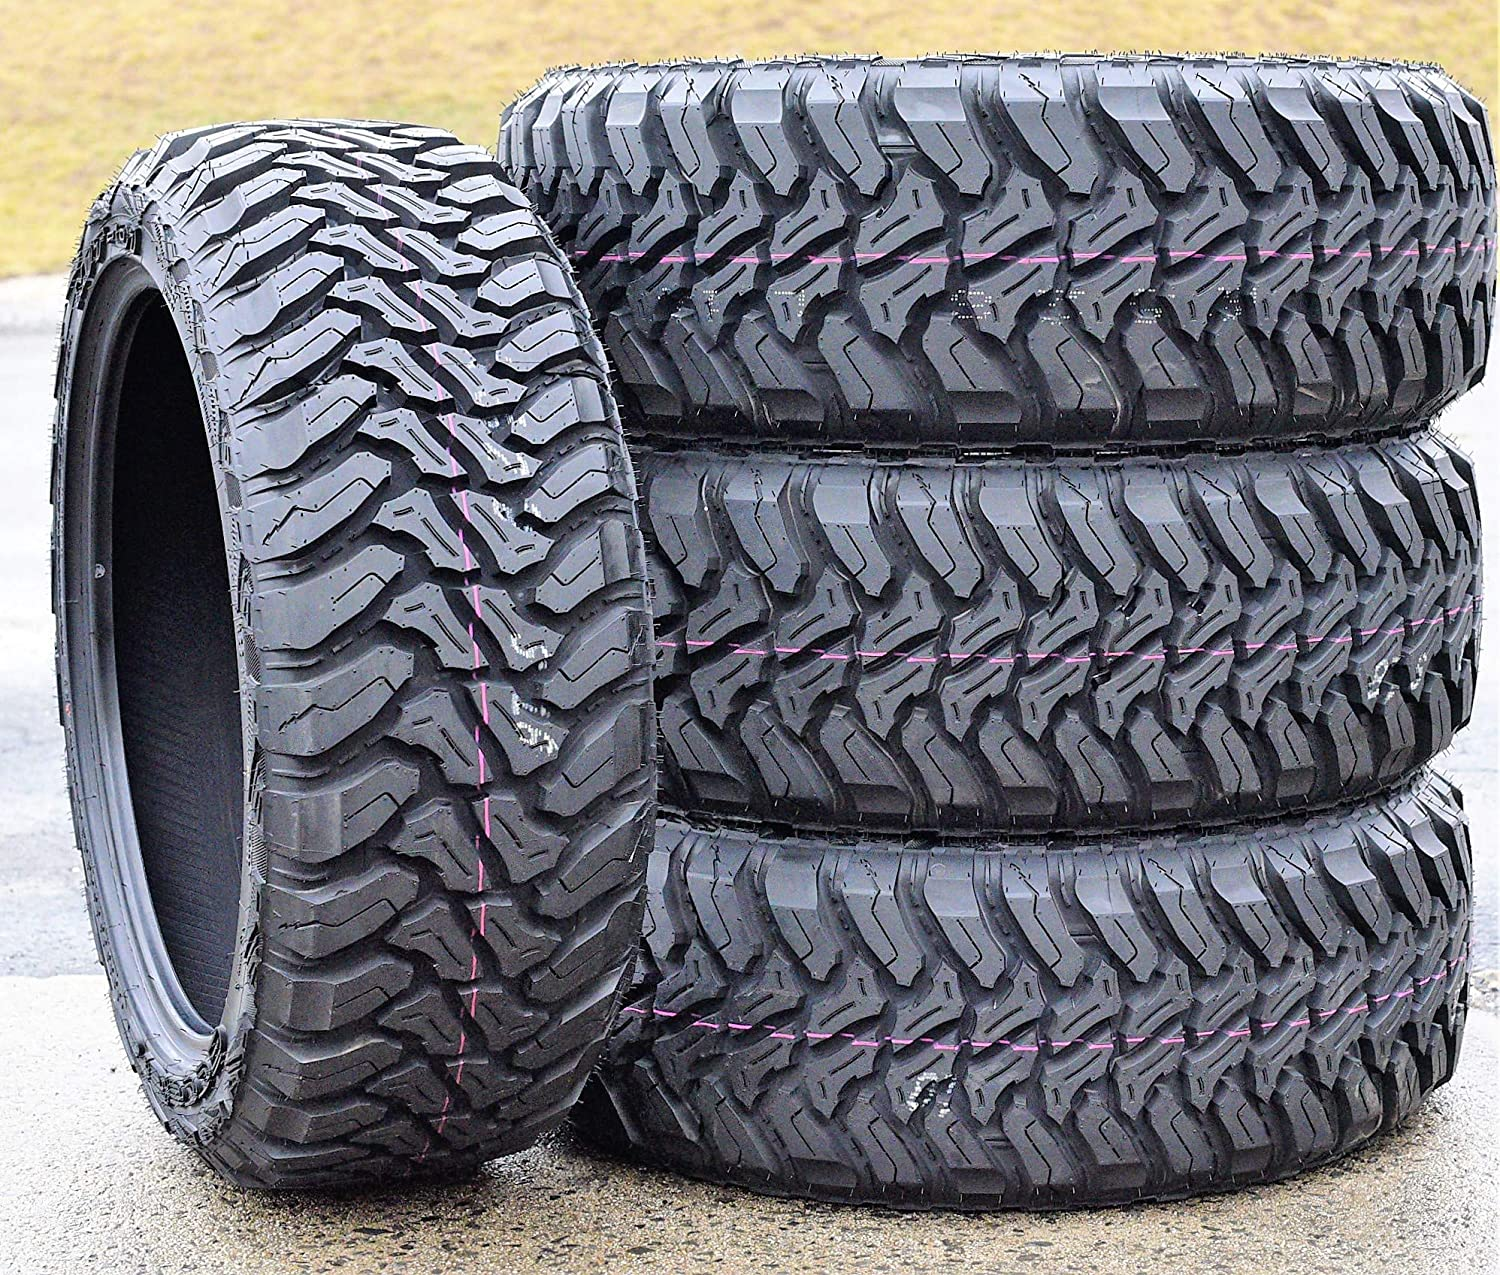 Set of 4 (FOUR) Accelera M/T-01 Mud Radial Tires-LT275/55R20 115/112P LRD 8-Ply